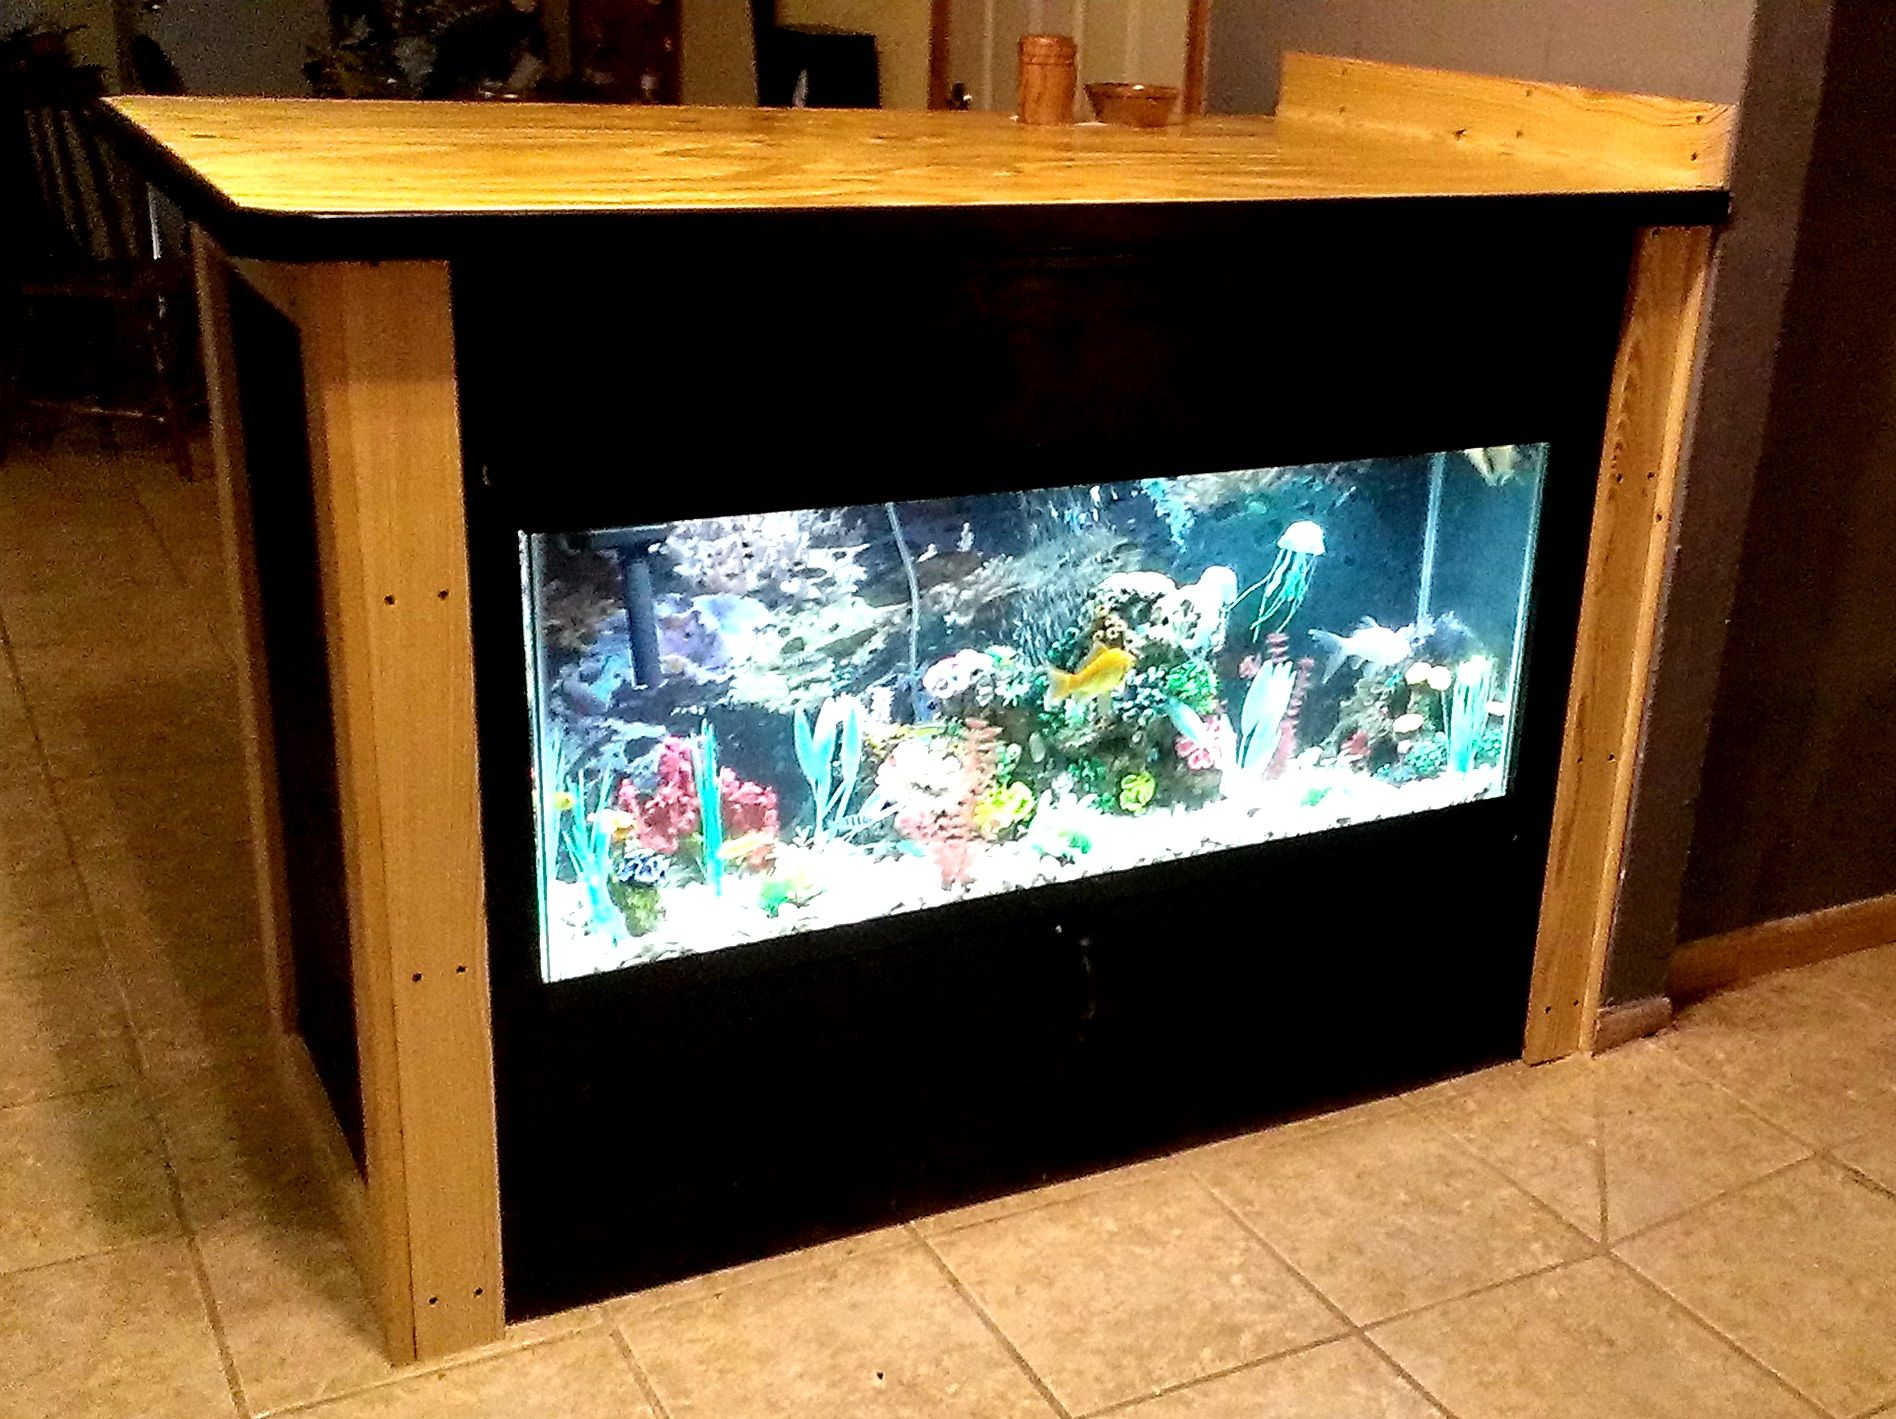 Coffee table fish aquariums of a fish tank coffee table as they